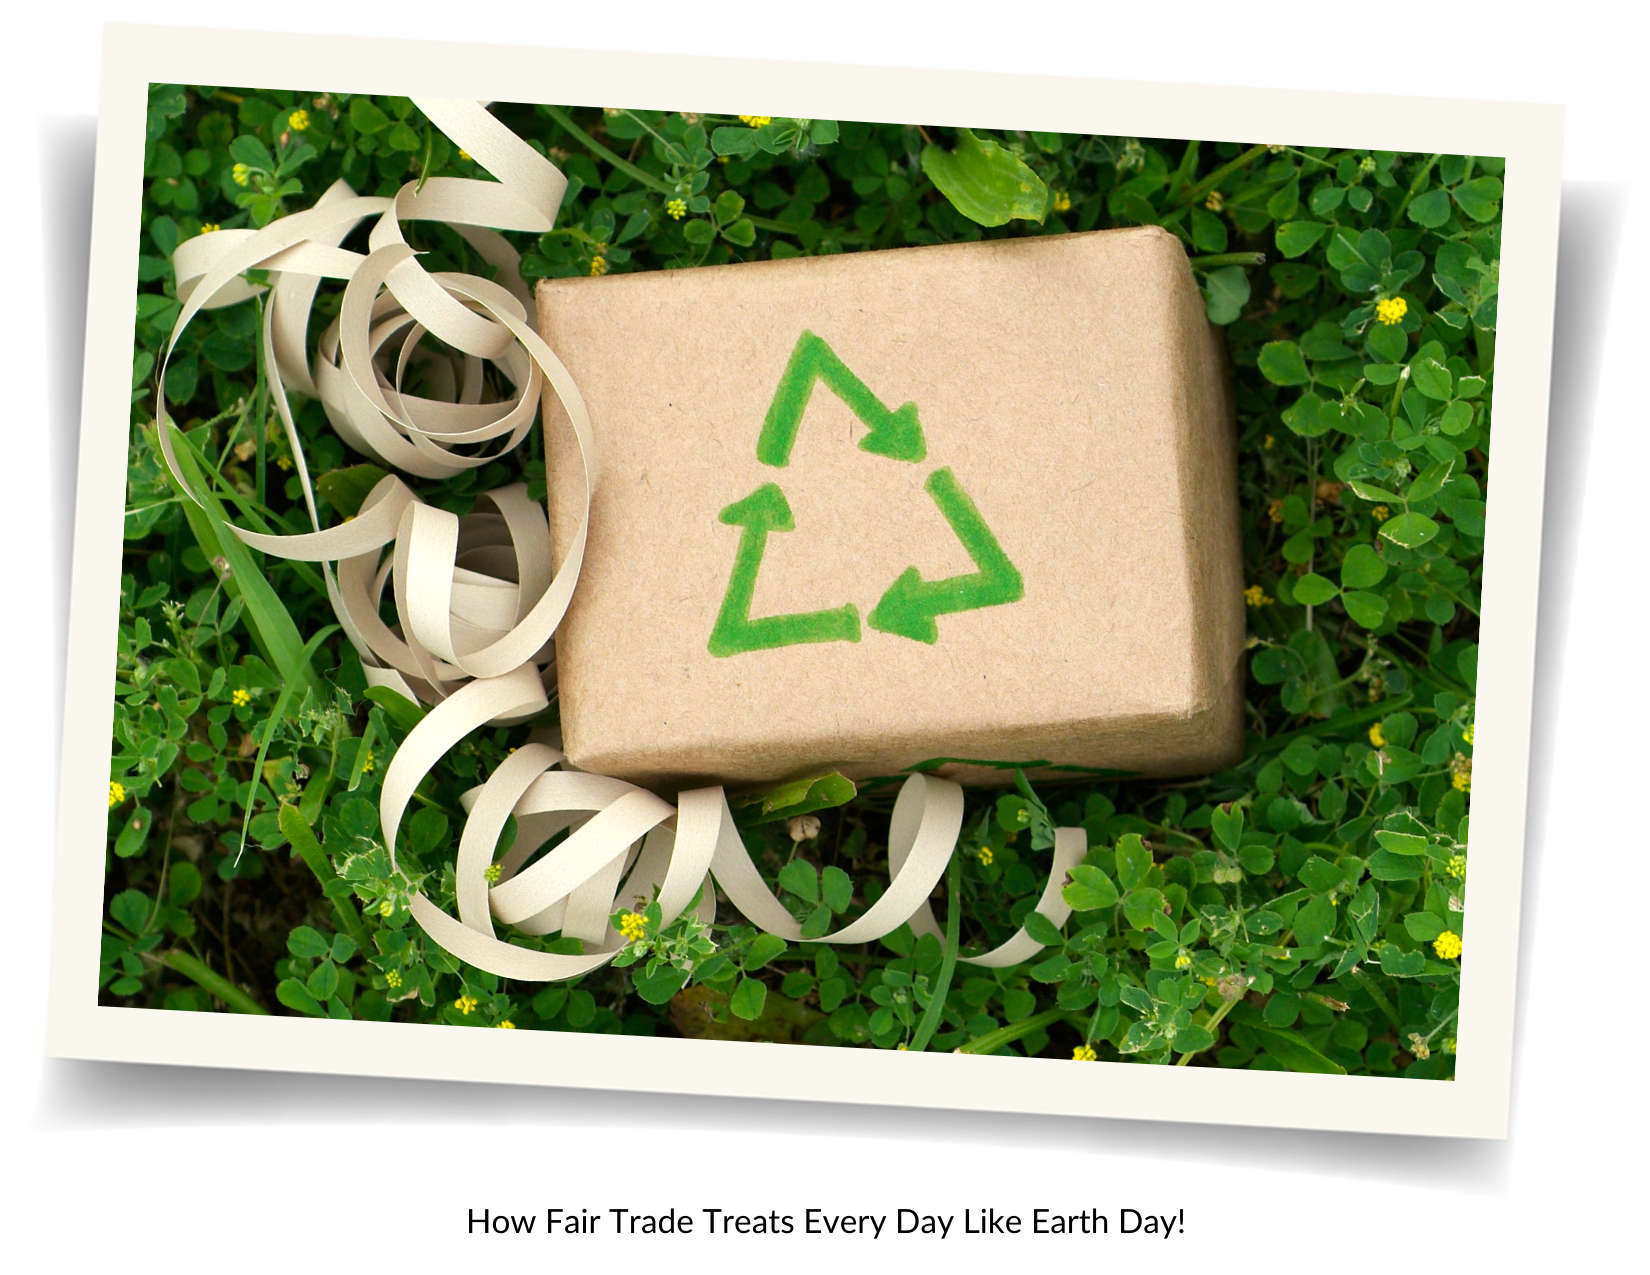 Earth Day is Every Day in Fair Trade!